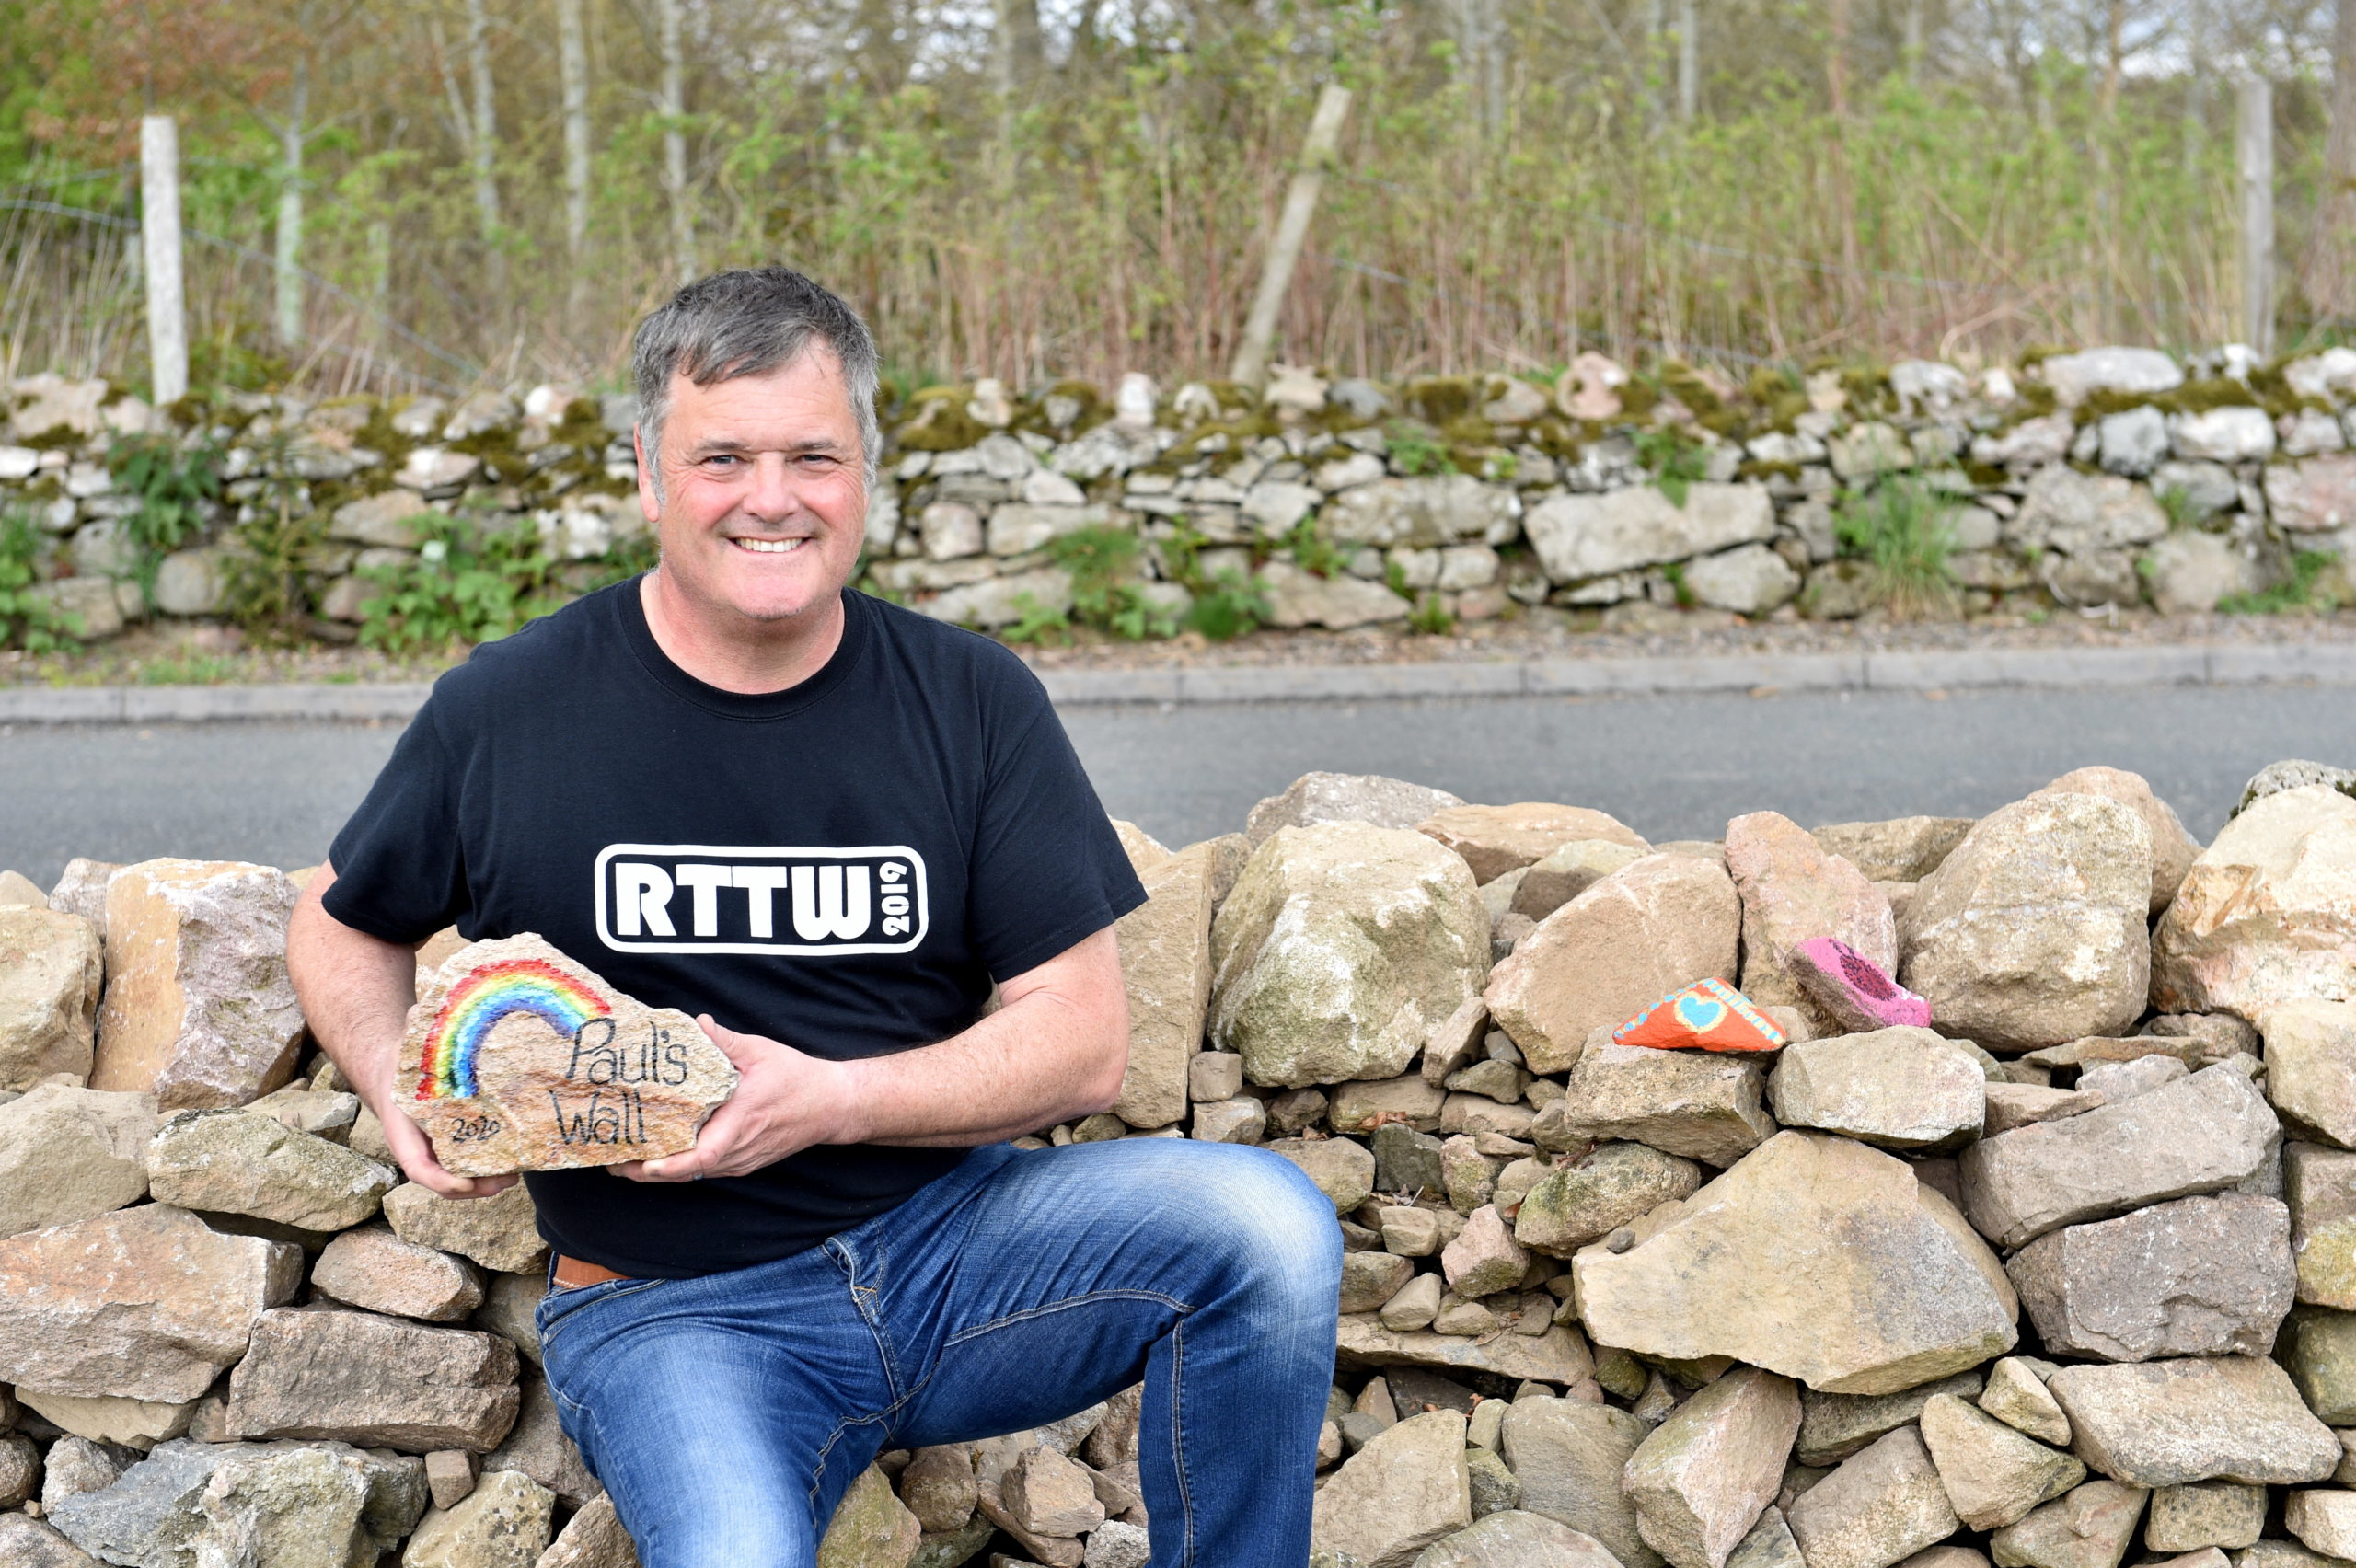 Paul Bailey spent his time on furlough repairing a wall in Udny Green and has had children and locals paint stones to put in it